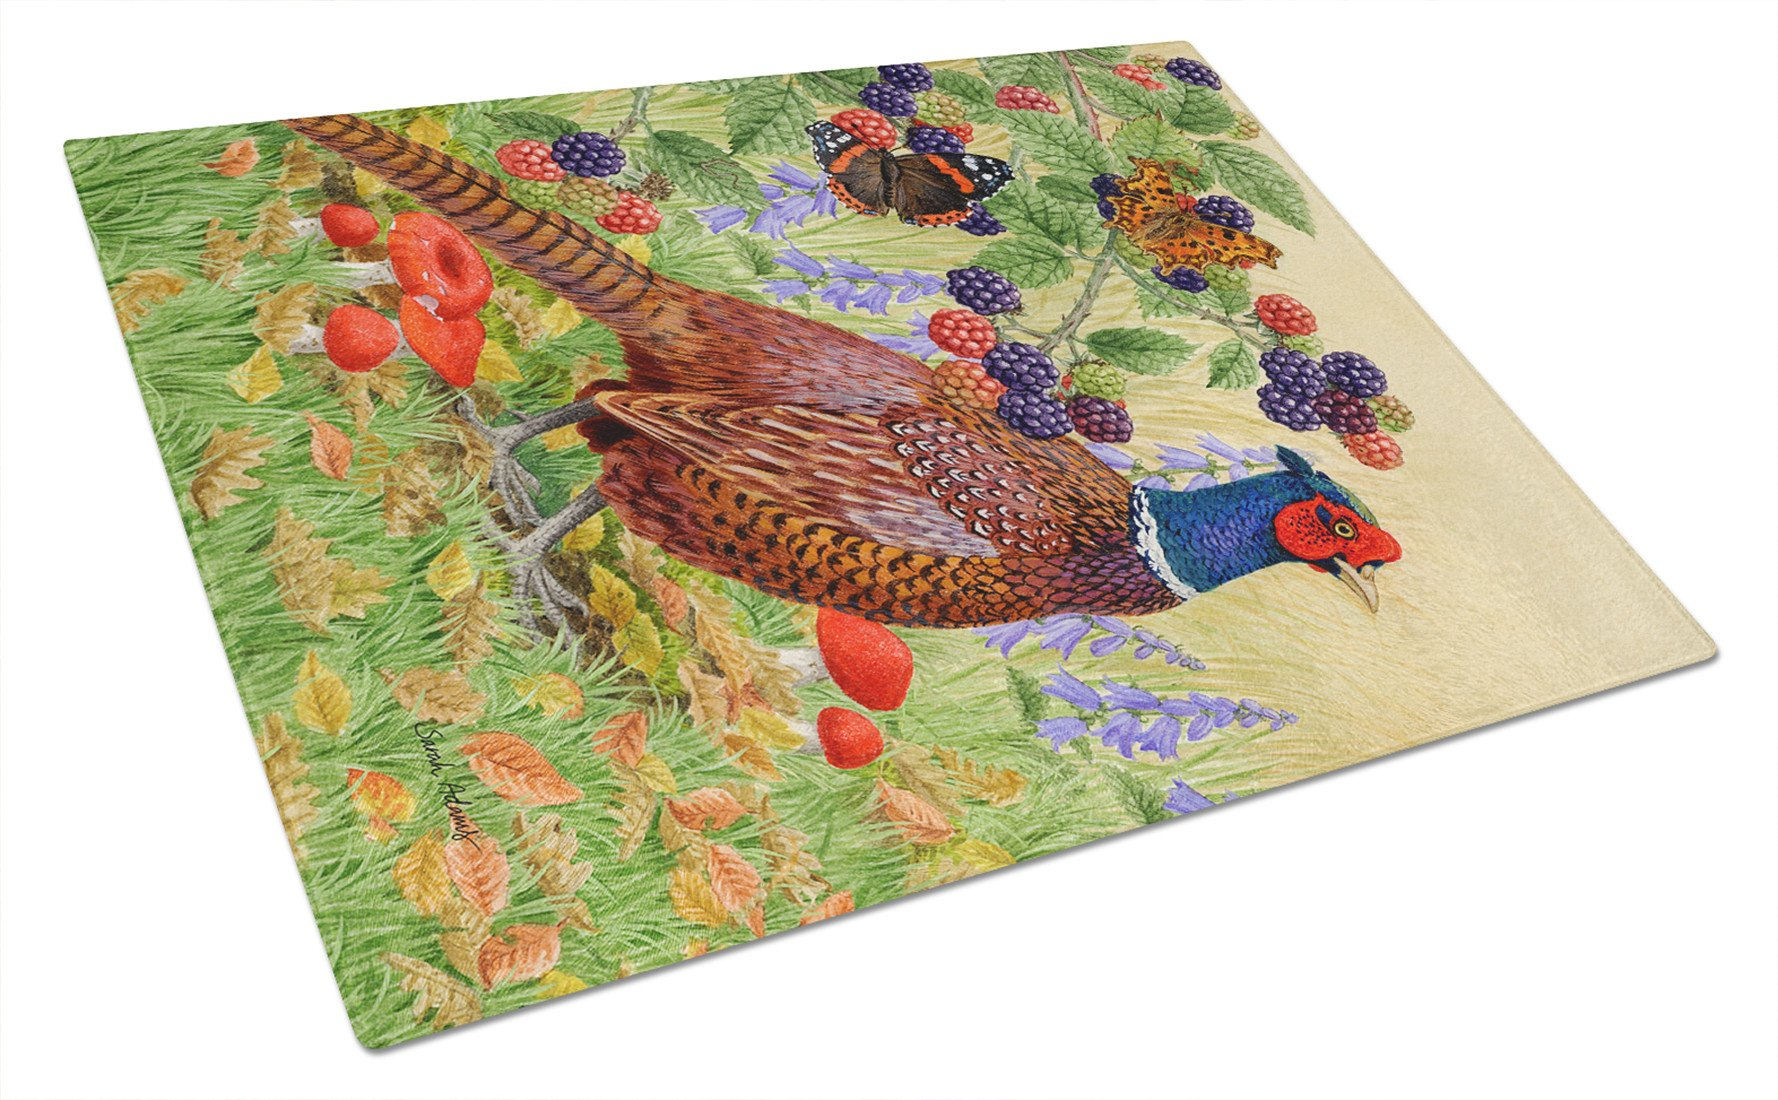 Pheasant Glass Cutting Board Large ASA2121LCB by Caroline's Treasures